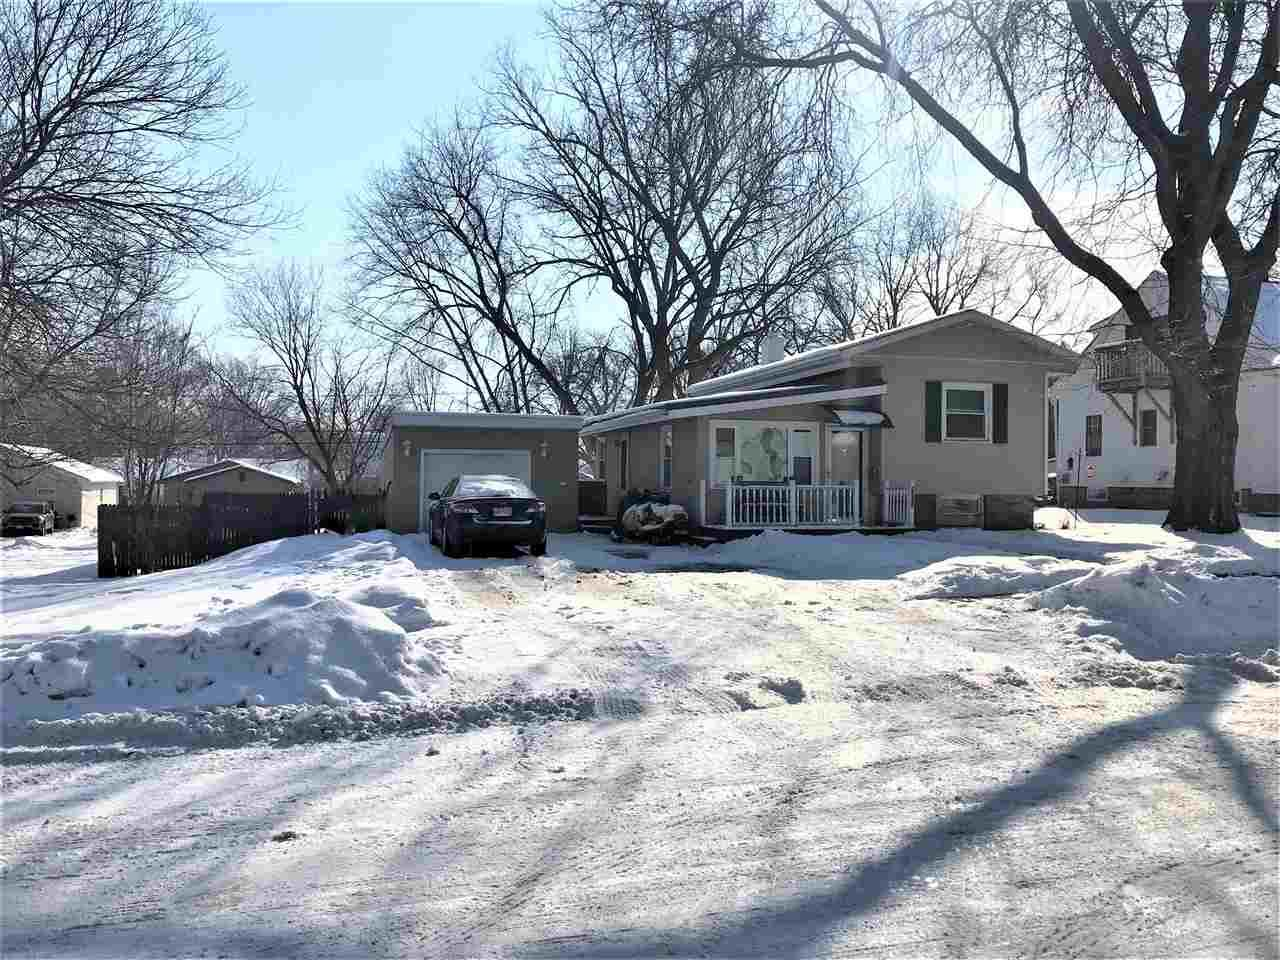 1155 S NORWOOD Avenue, Green Bay, WI 54304 - MLS#: 50236101